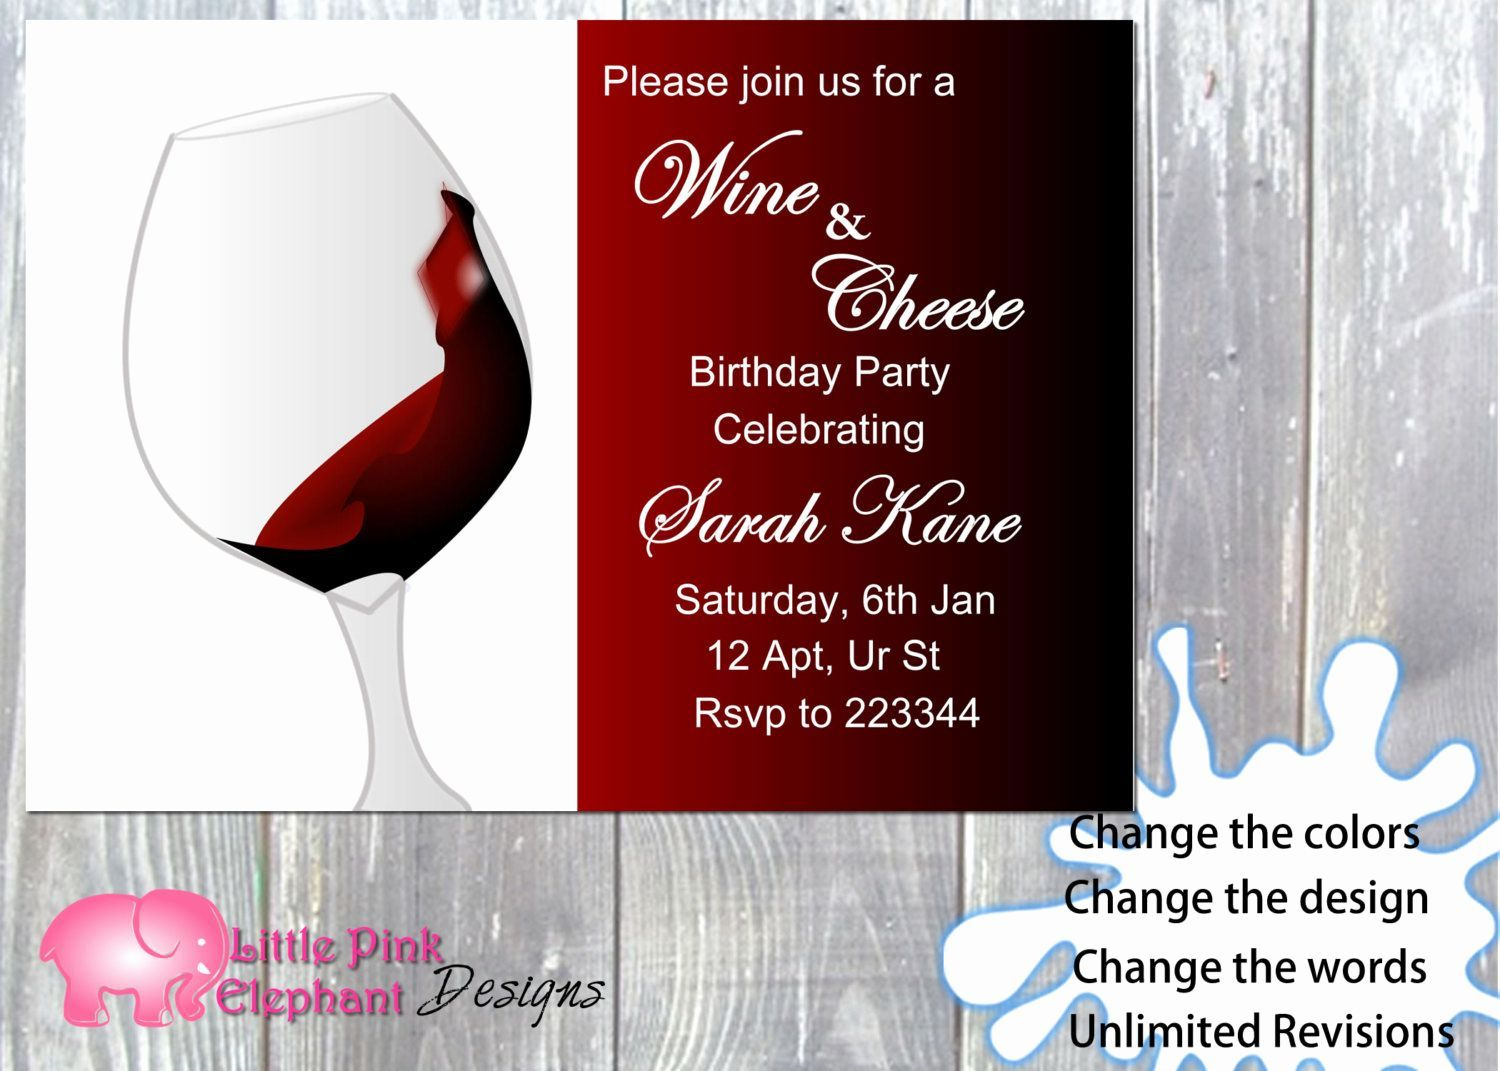 Wine And Cheese Invitation Lovely Wine And Cheese Party Invitation Wine And Chee Chee Cheese Invi In 2020 Wine And Cheese Party Wine Invitations Party Invitations